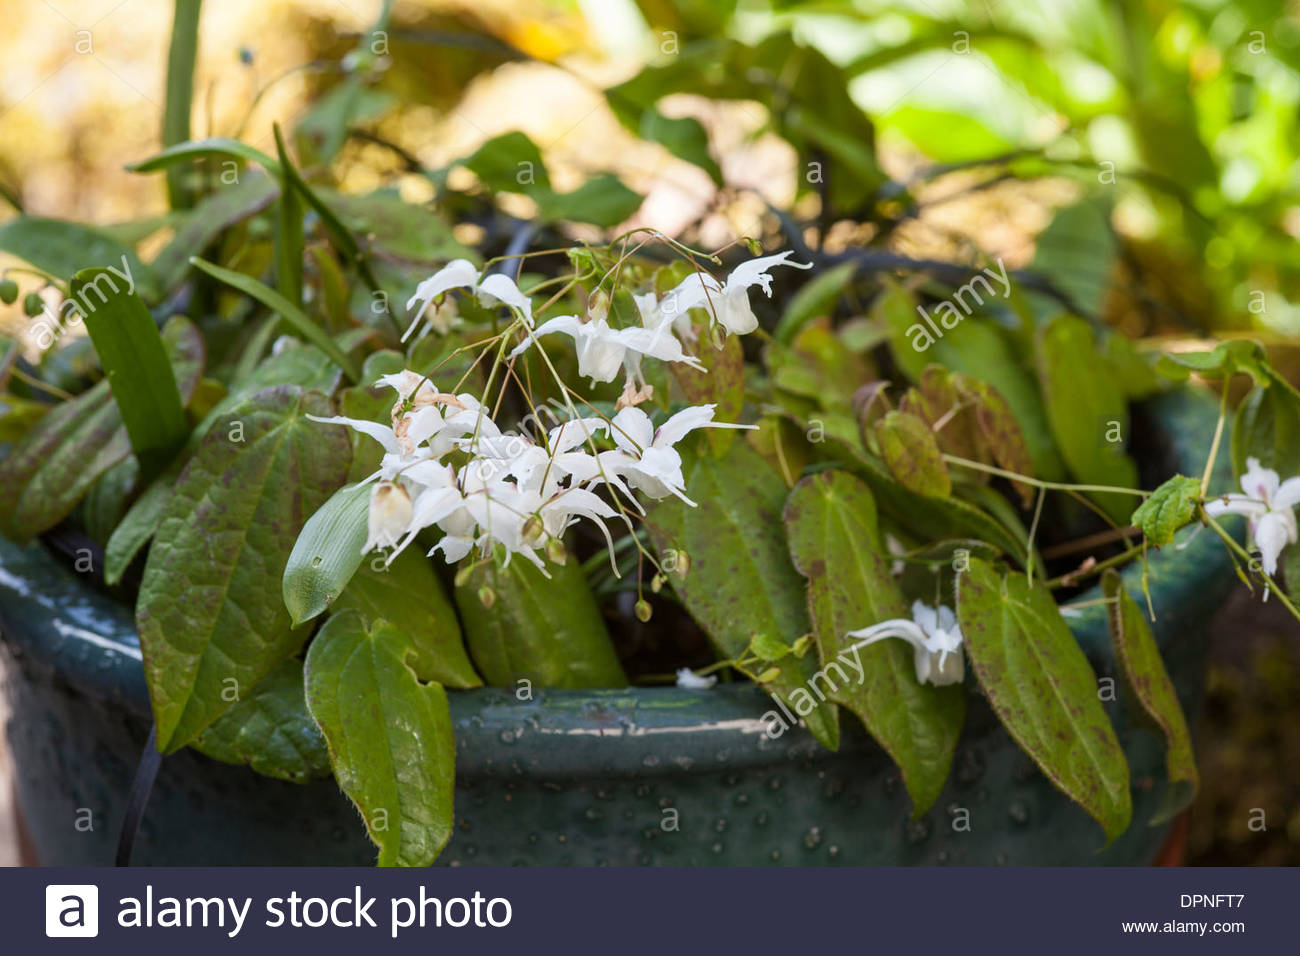 Epimedium 'Ogisui' in container - Stock Image